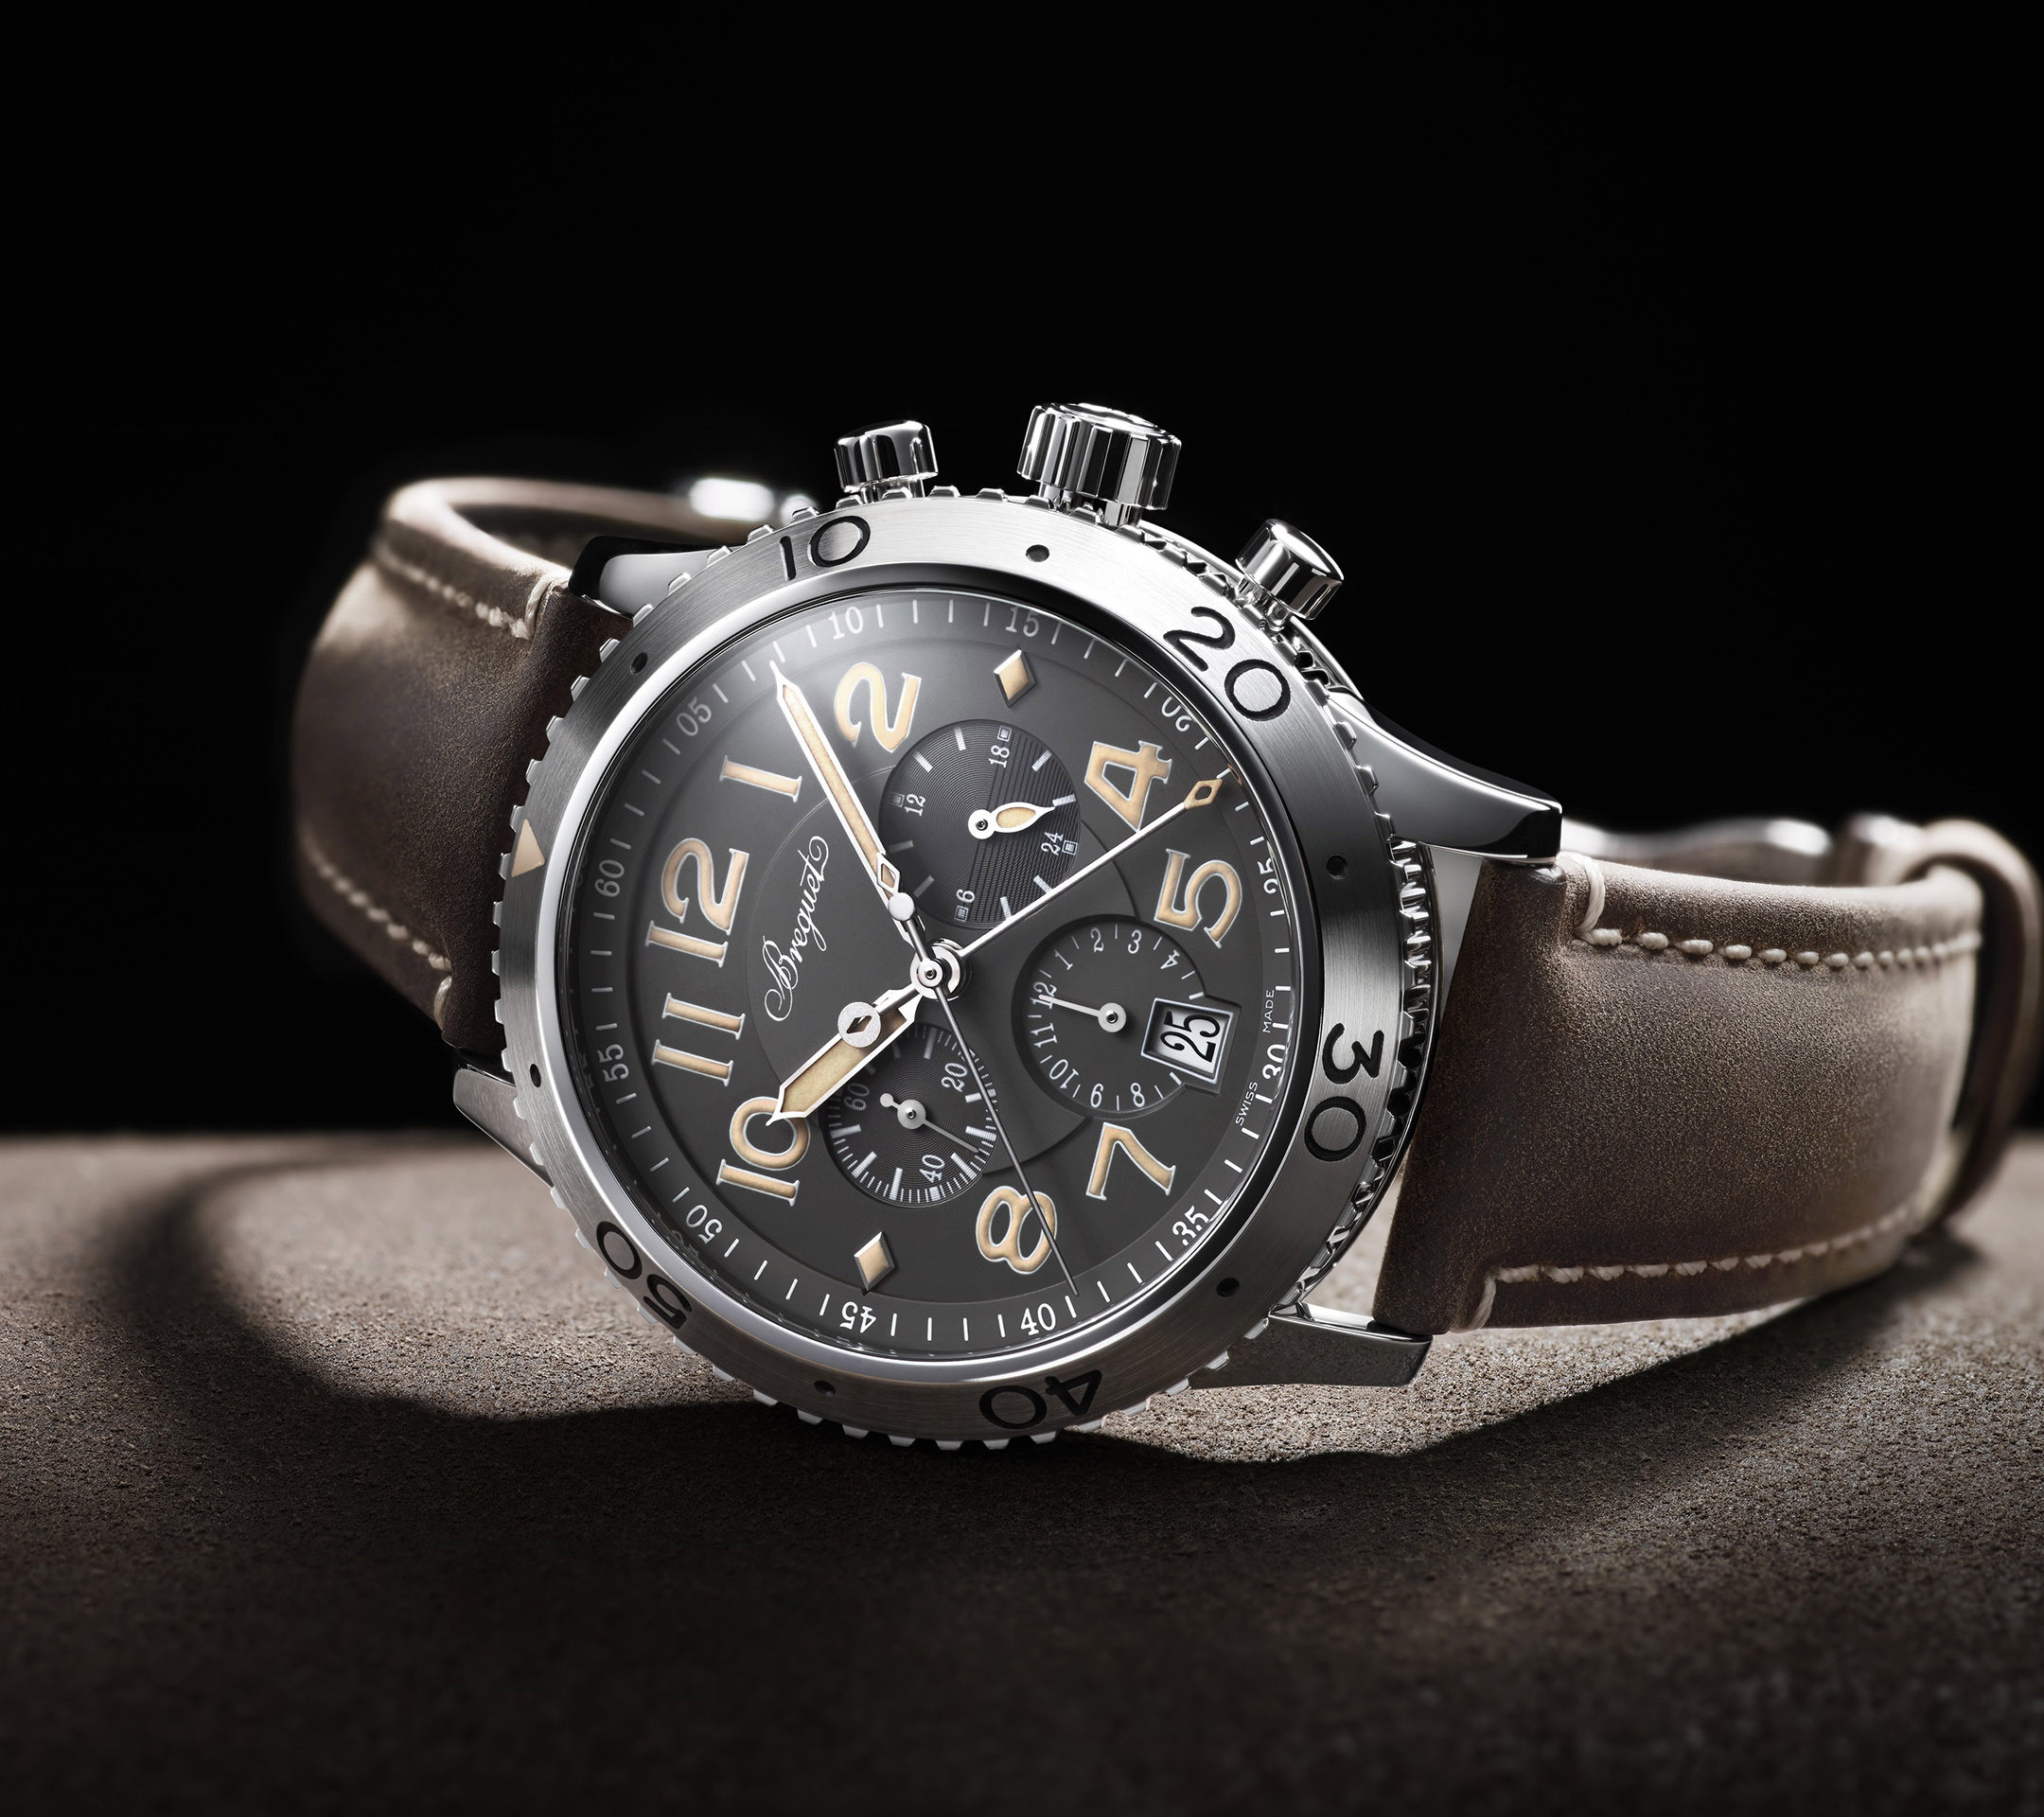 Breguet watch with brown leather strap Wallpaper